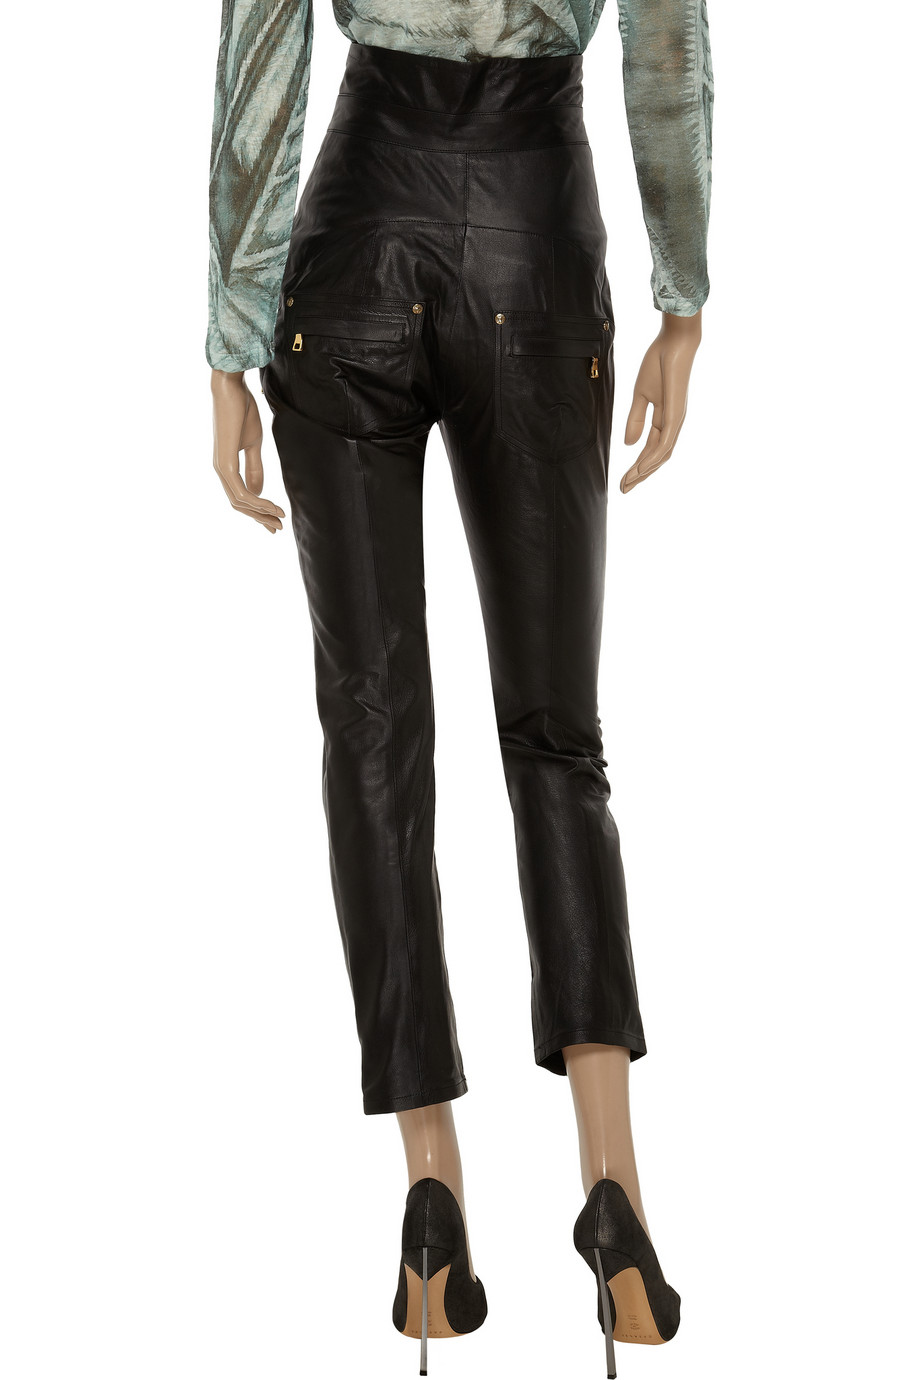 Lyst Balmain High Waisted Leather Skinny Pants In Black